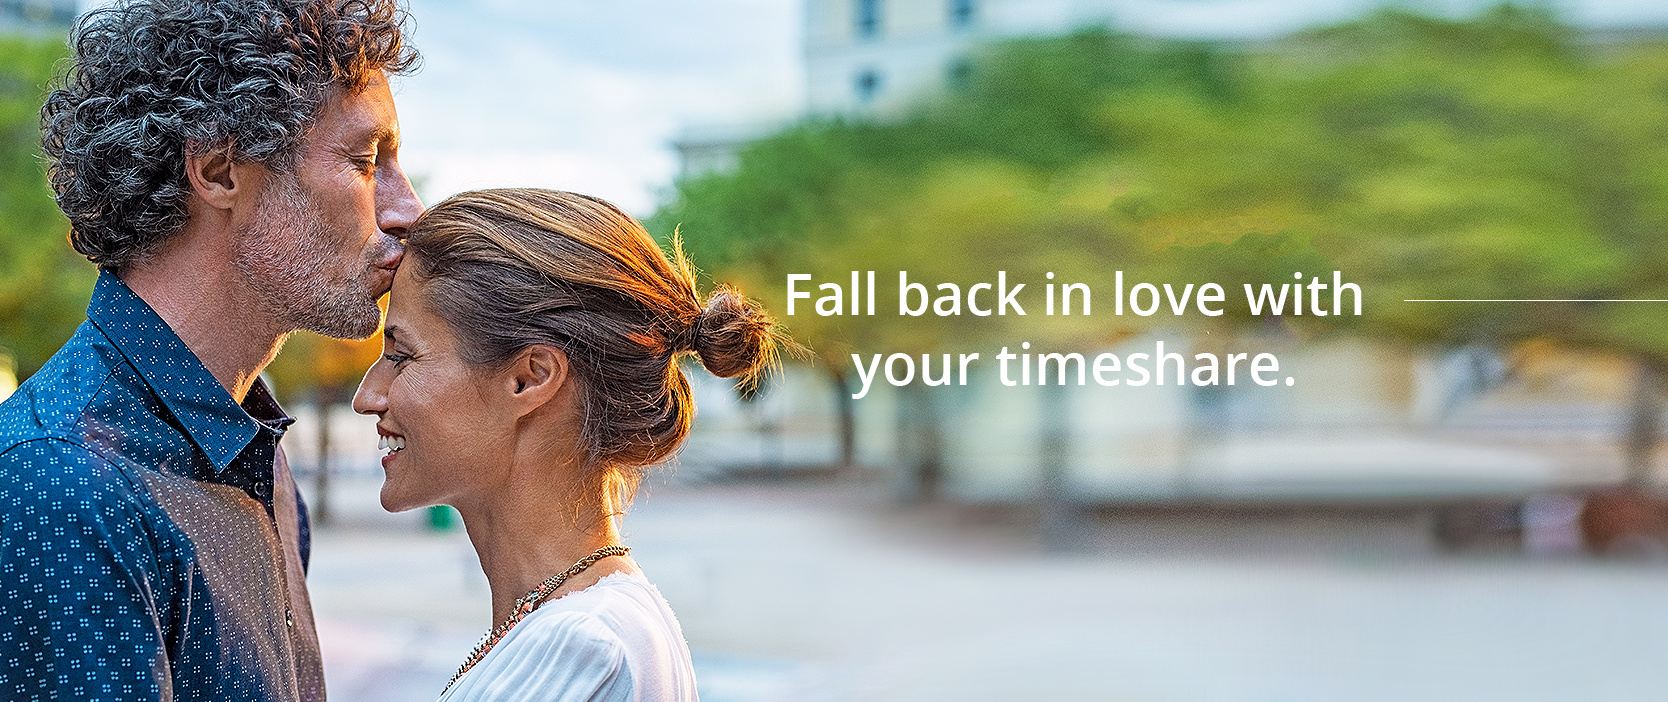 Fall back in love with your timeshare